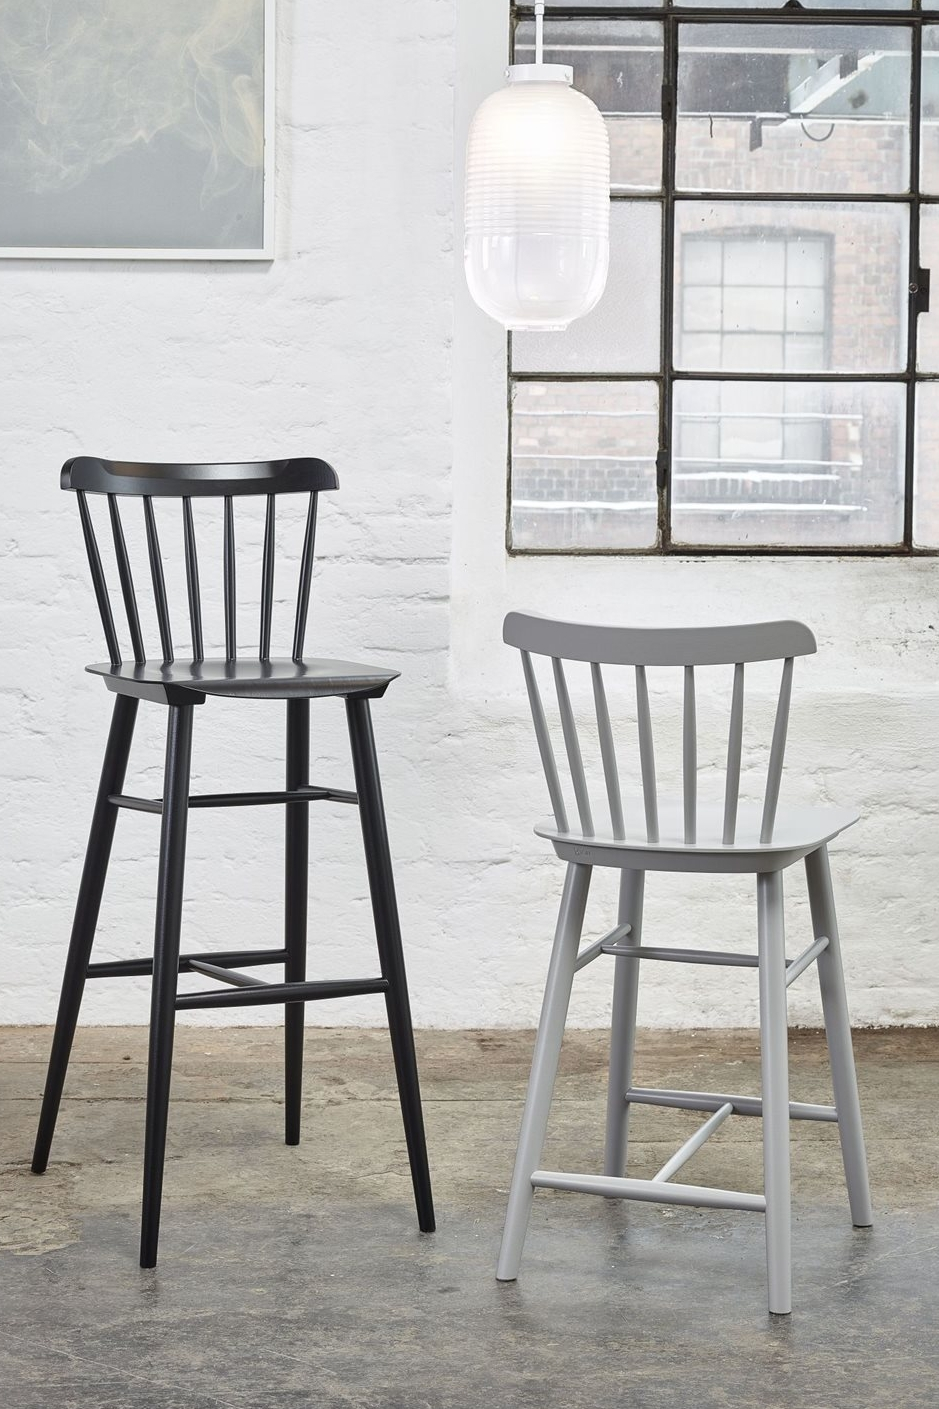 Barstool  Ironica  in tall and short variations